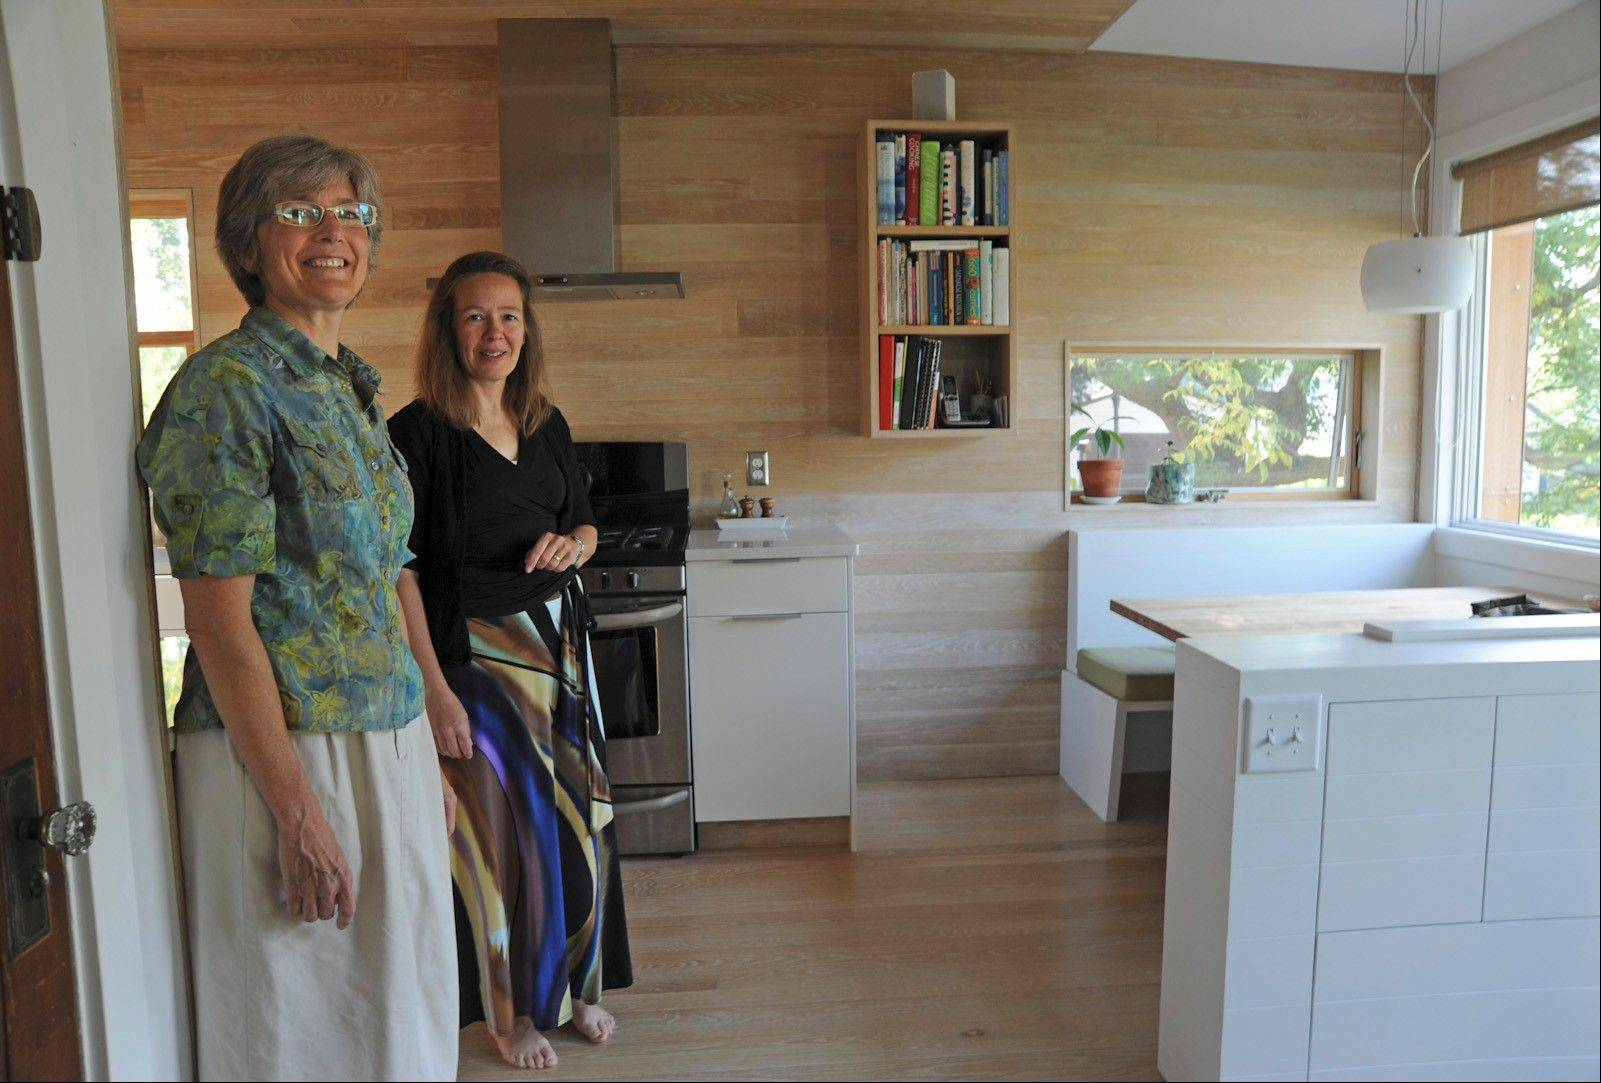 Kathy Wallace, left, and Sarah Pradt in their Scandinavian-inspired kitchen.